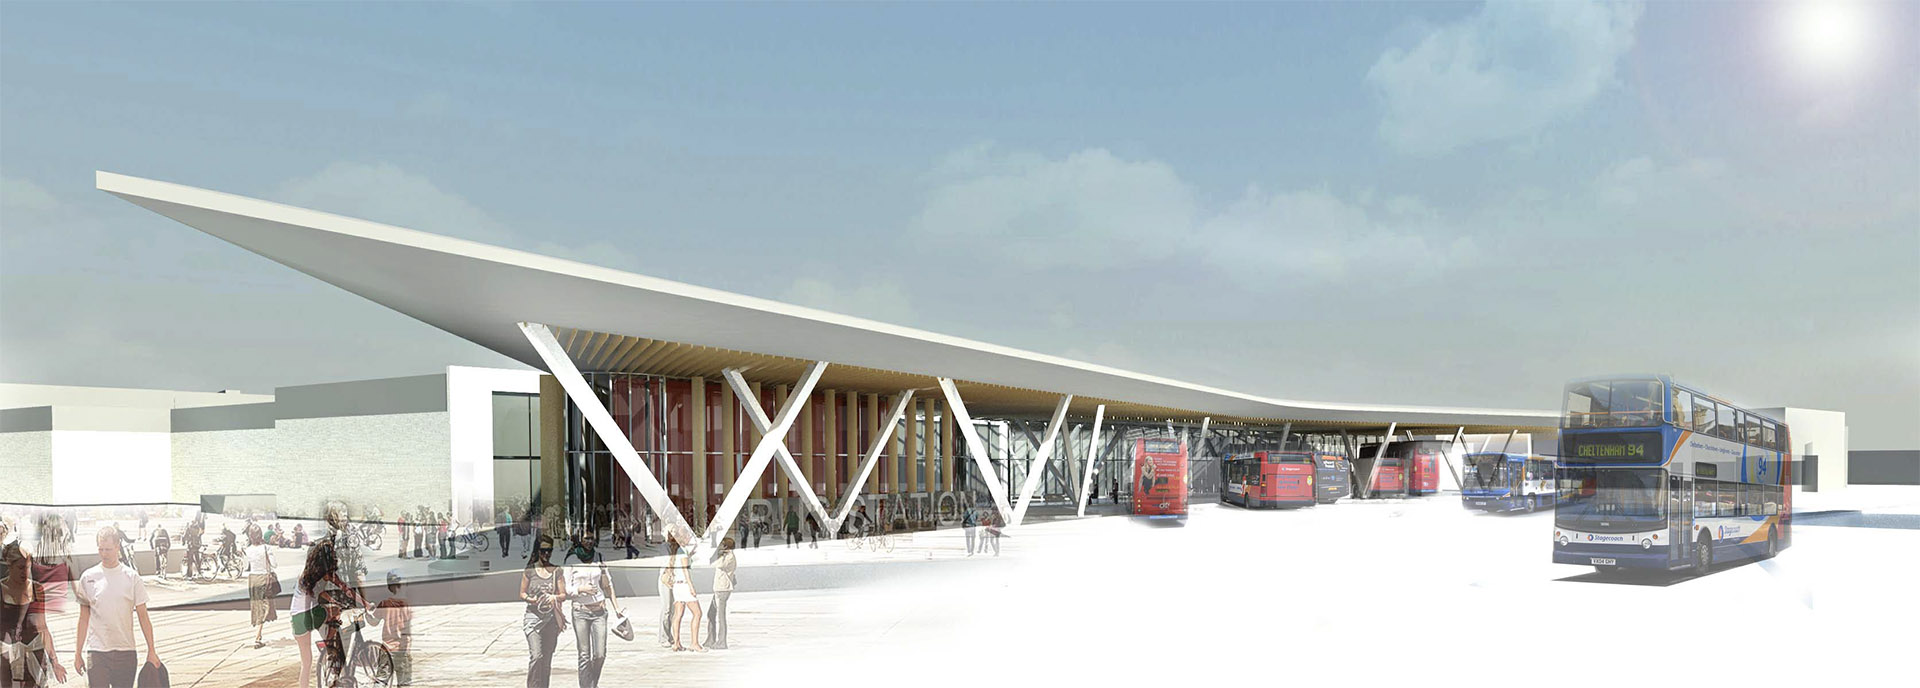 Part of the master plan included the redevelopment of the Bus Station